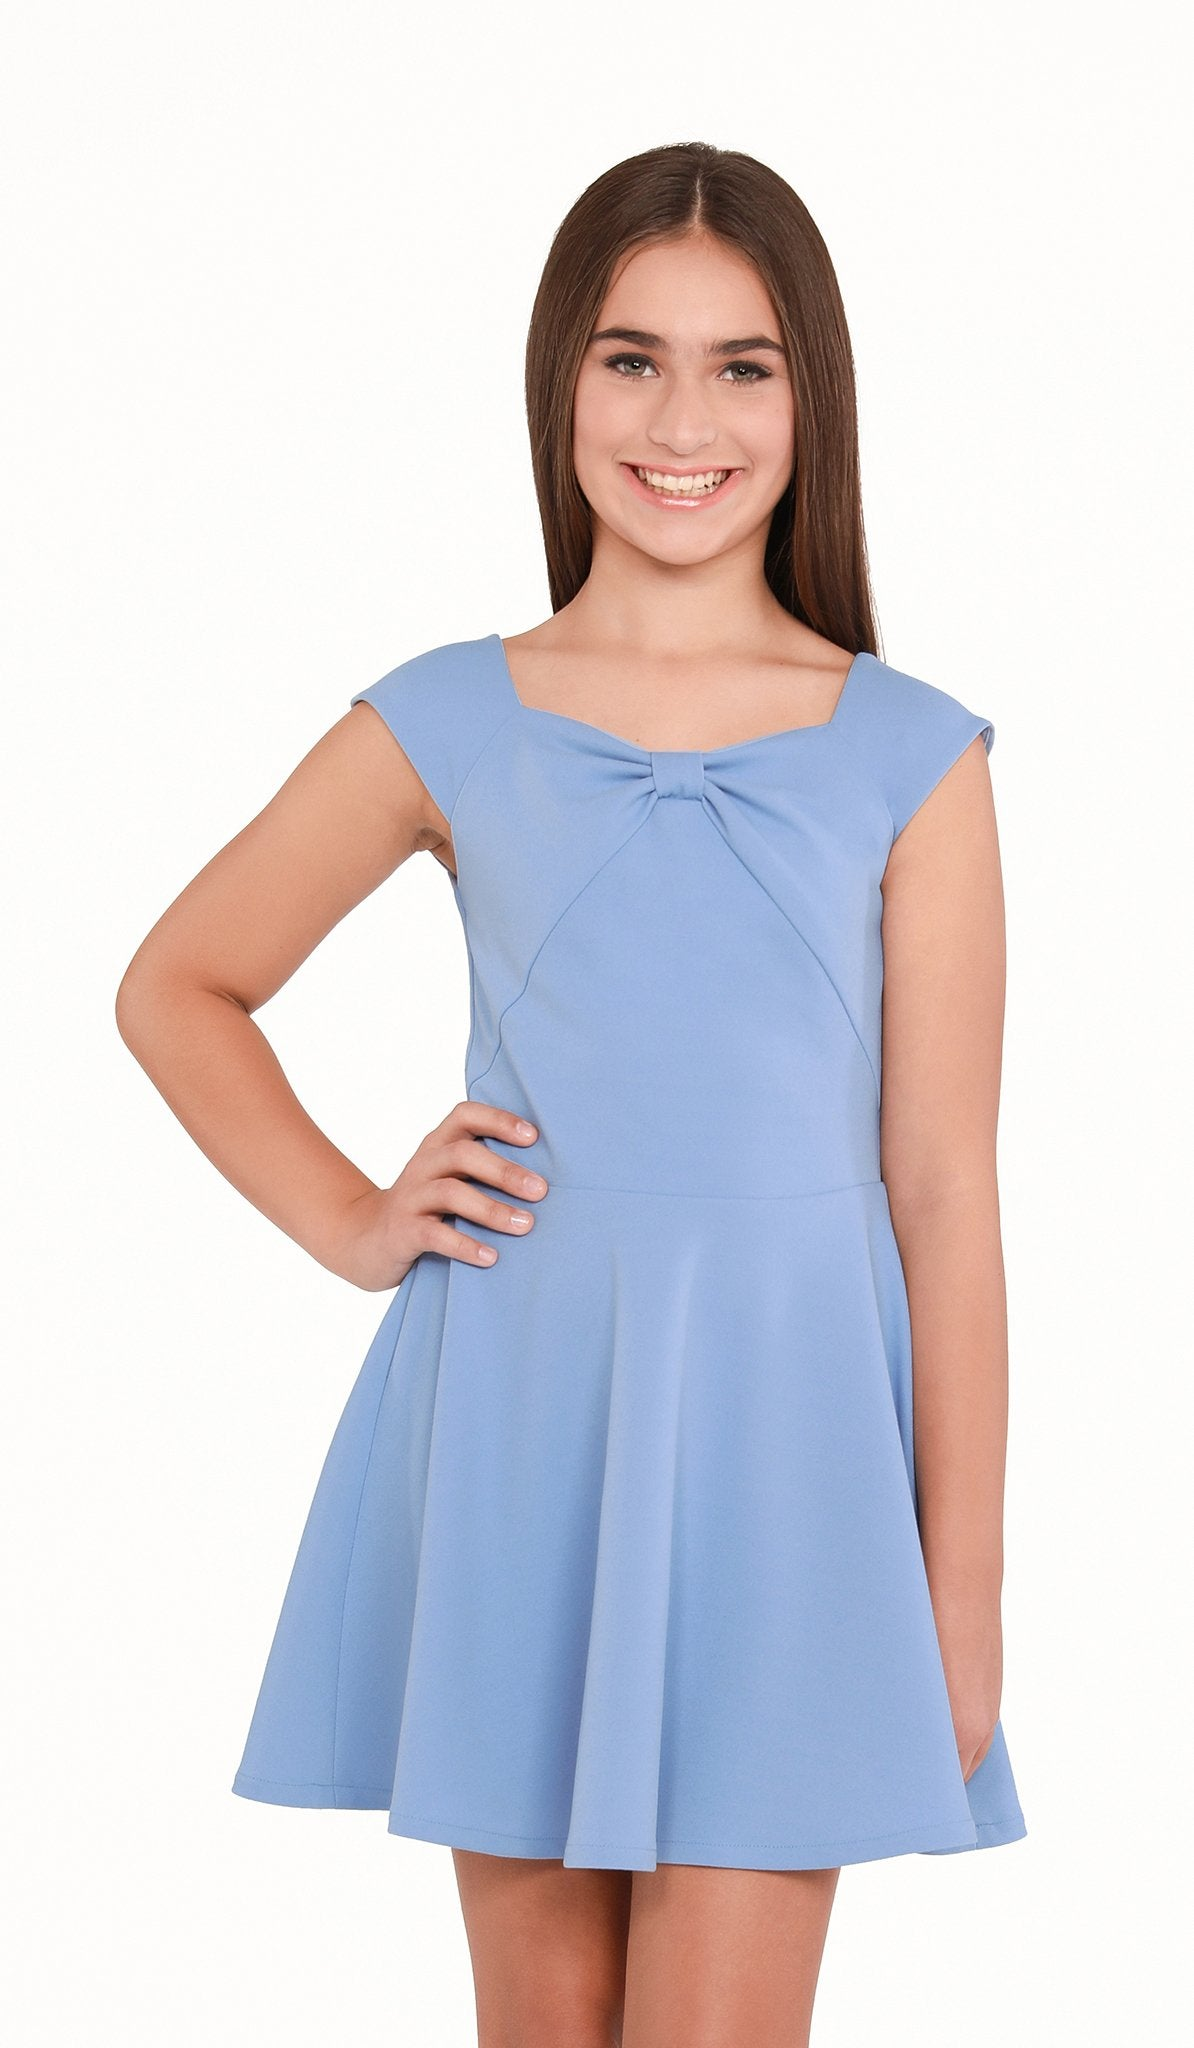 The Sally Miller Liv Dress - Blue stretch knit cap sleeve fit and flare dress with bow detail